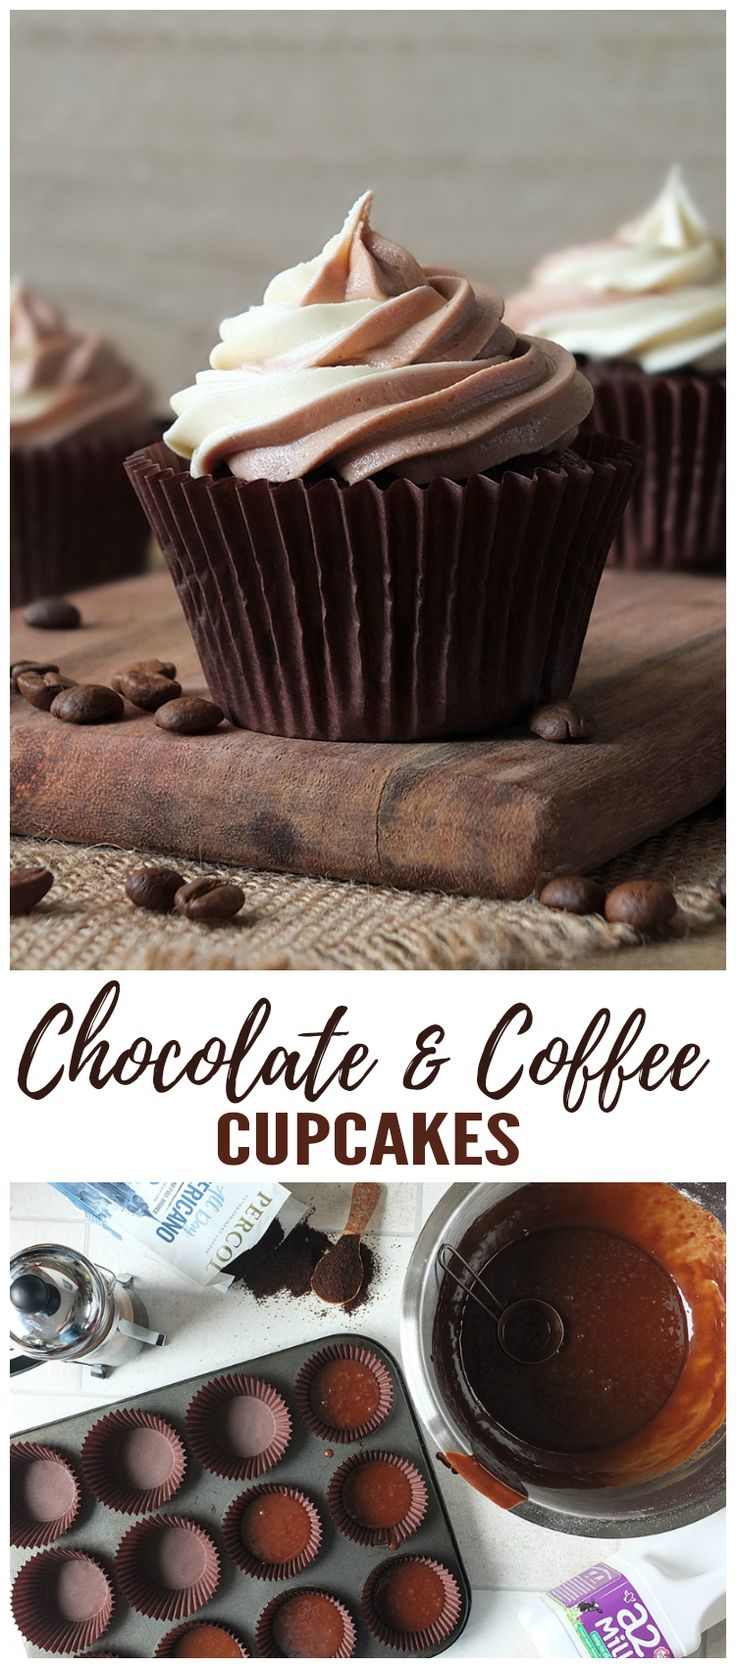 In collaboration with a2 Milk™ & Percol Coffee. #ad #cupcake #recipe #chocolate #coffee